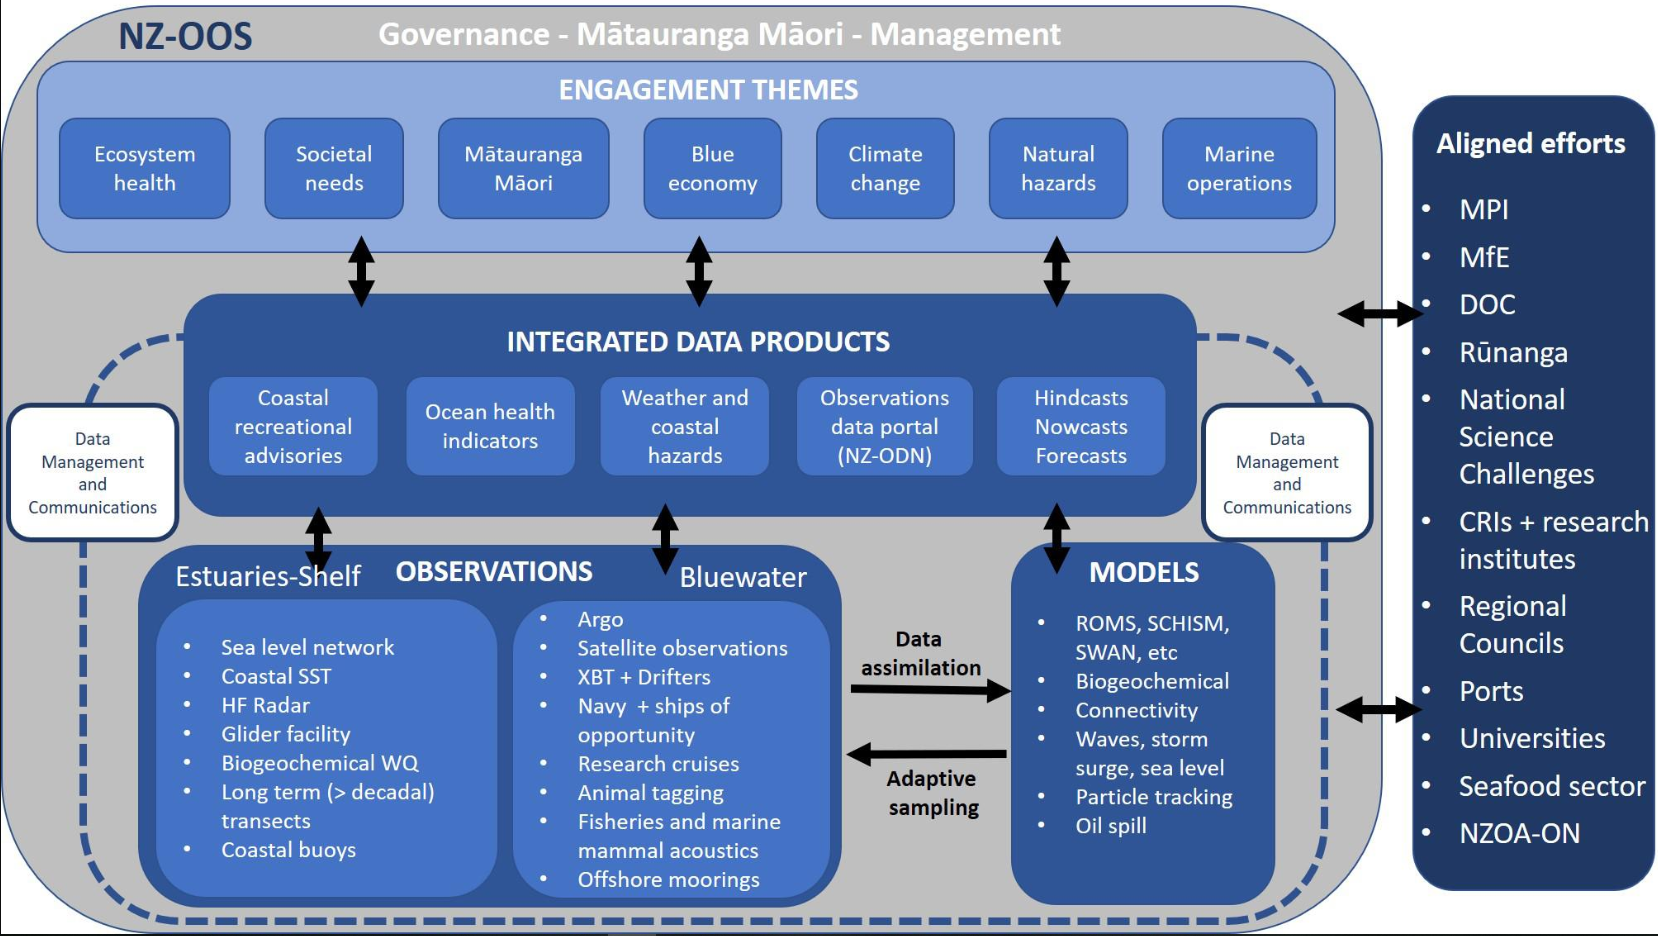 Towards an Integrated Ocean Observing System for new zealand. From  O'Callaghan  et al.  (2019)